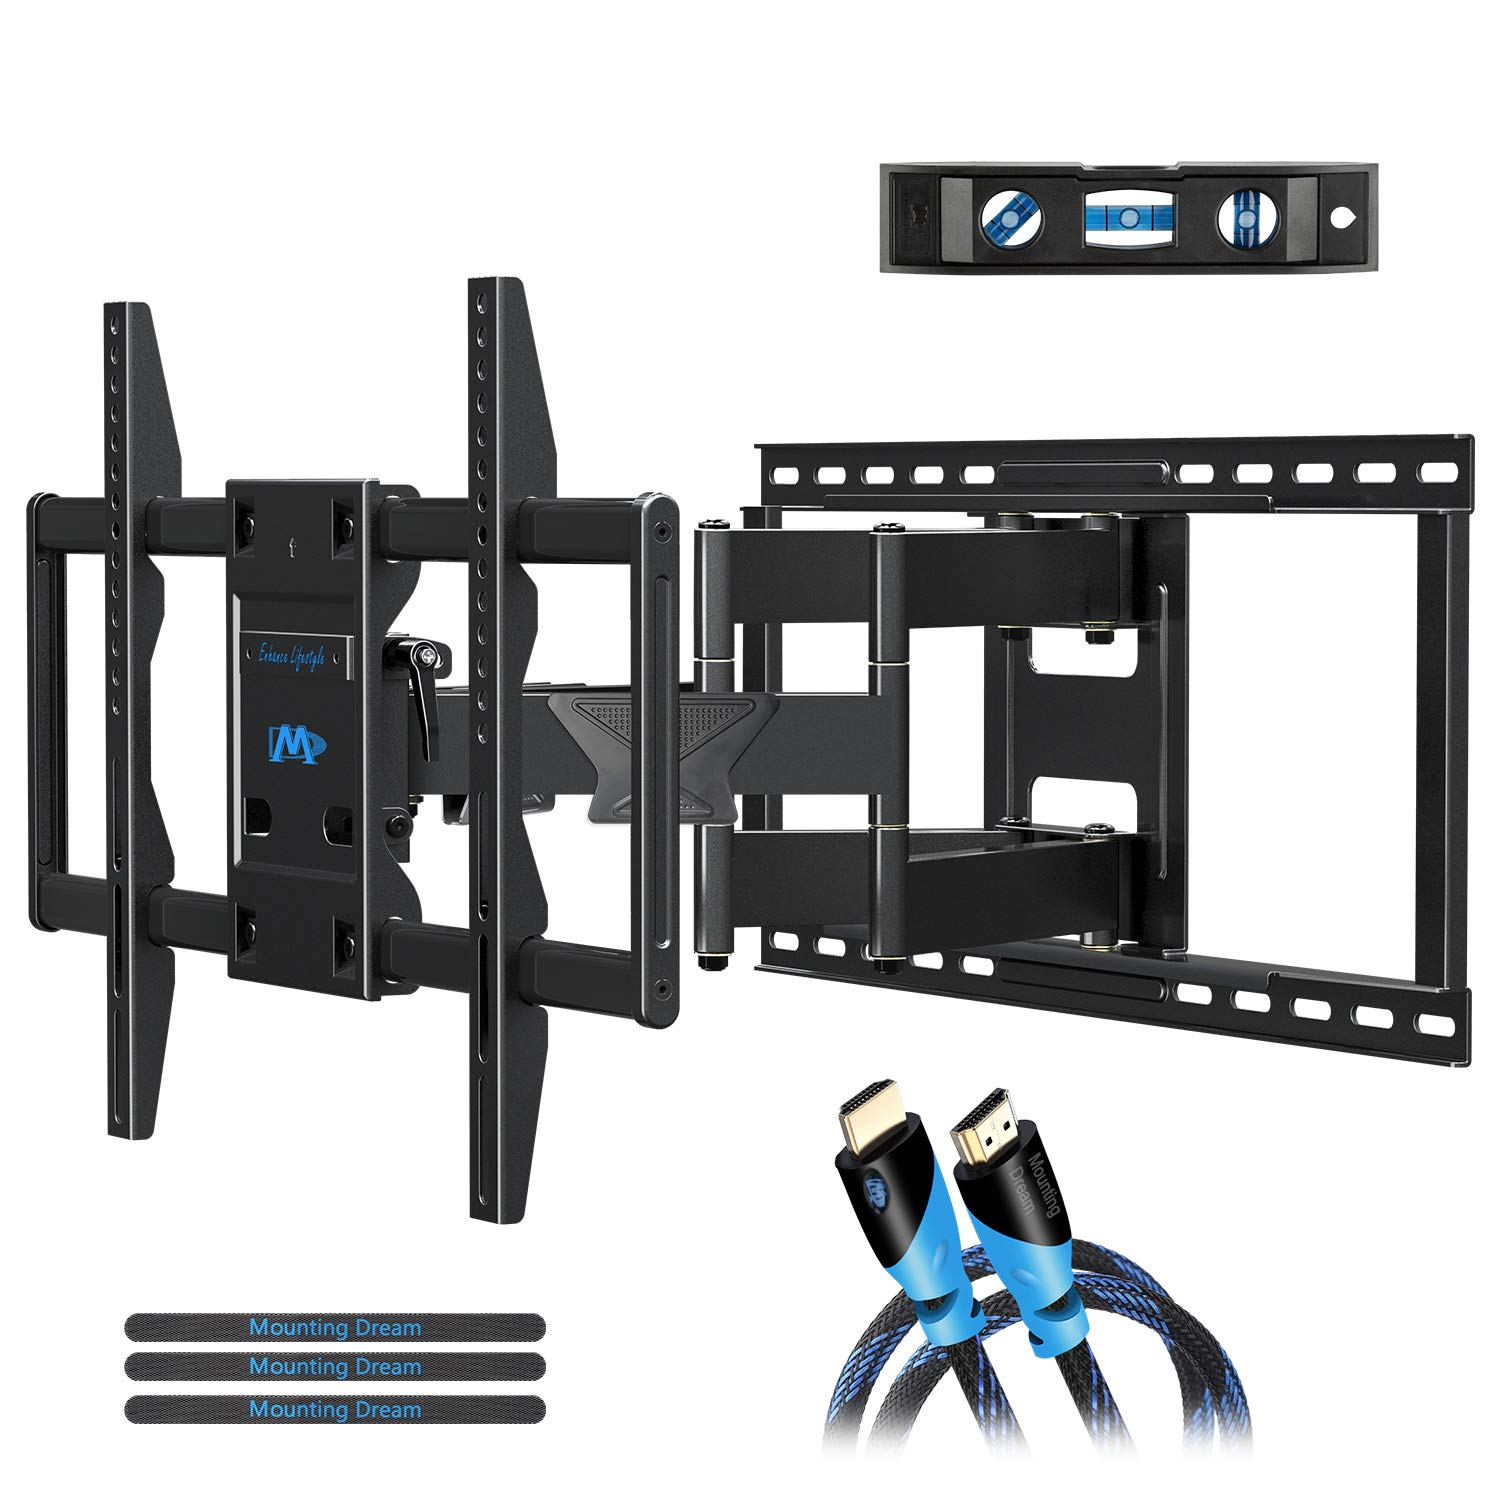 Mounting Dream Full Motion TV Mount Wall Bracket TV Wall Mounts for 42-75 Inch TV, Premium TV Bracket, Fits 16, 18, 24 inch Wood Stud Spacing with Articulating Arm up to VESA 600x400mm, 132 lbs MD2298 by Mounting Dream